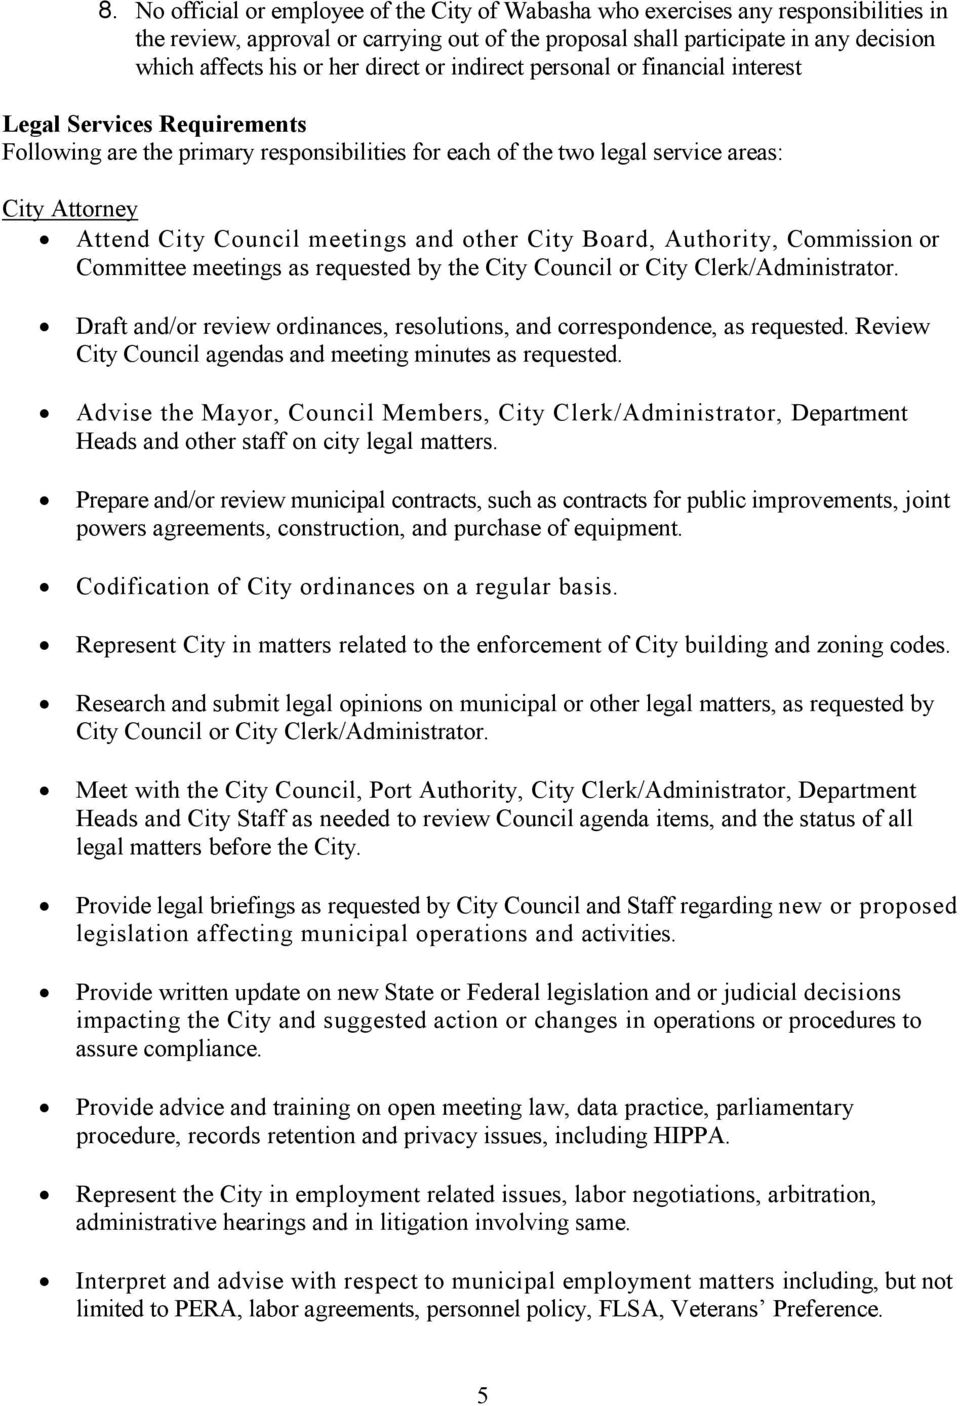 meetings and other City Board, Authority, Commission or Committee meetings as requested by the City Council or City Clerk/Administrator.